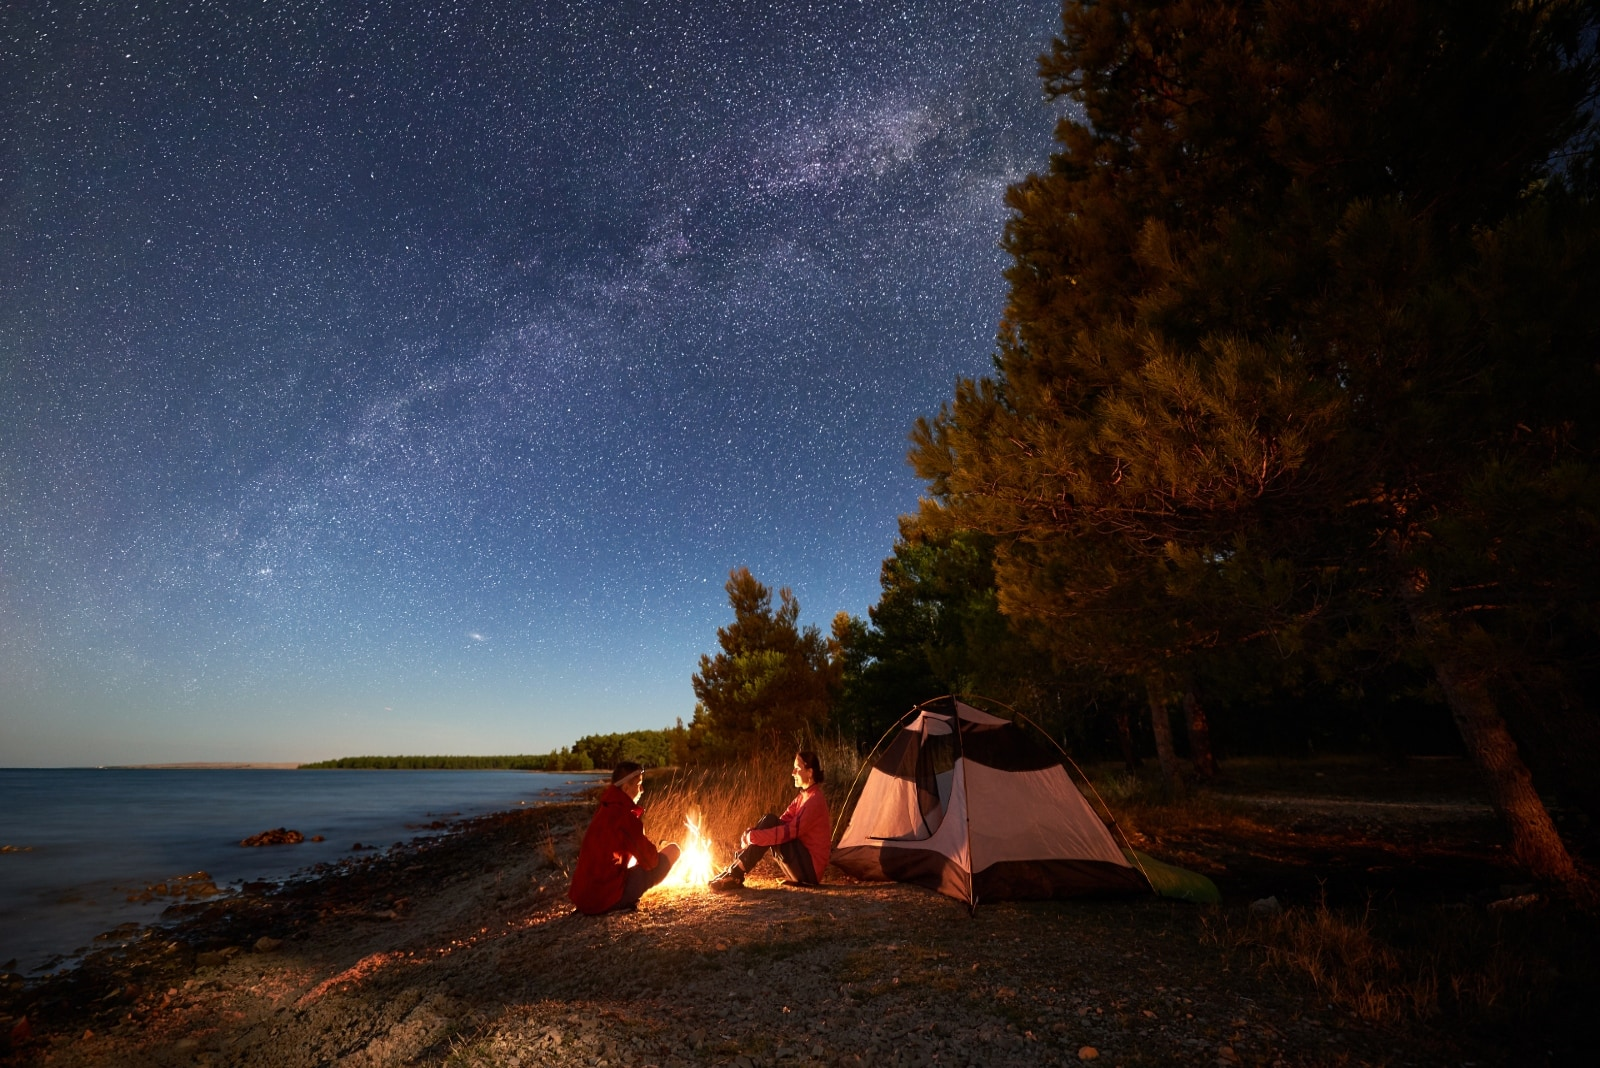 man and woman camping on shore during night